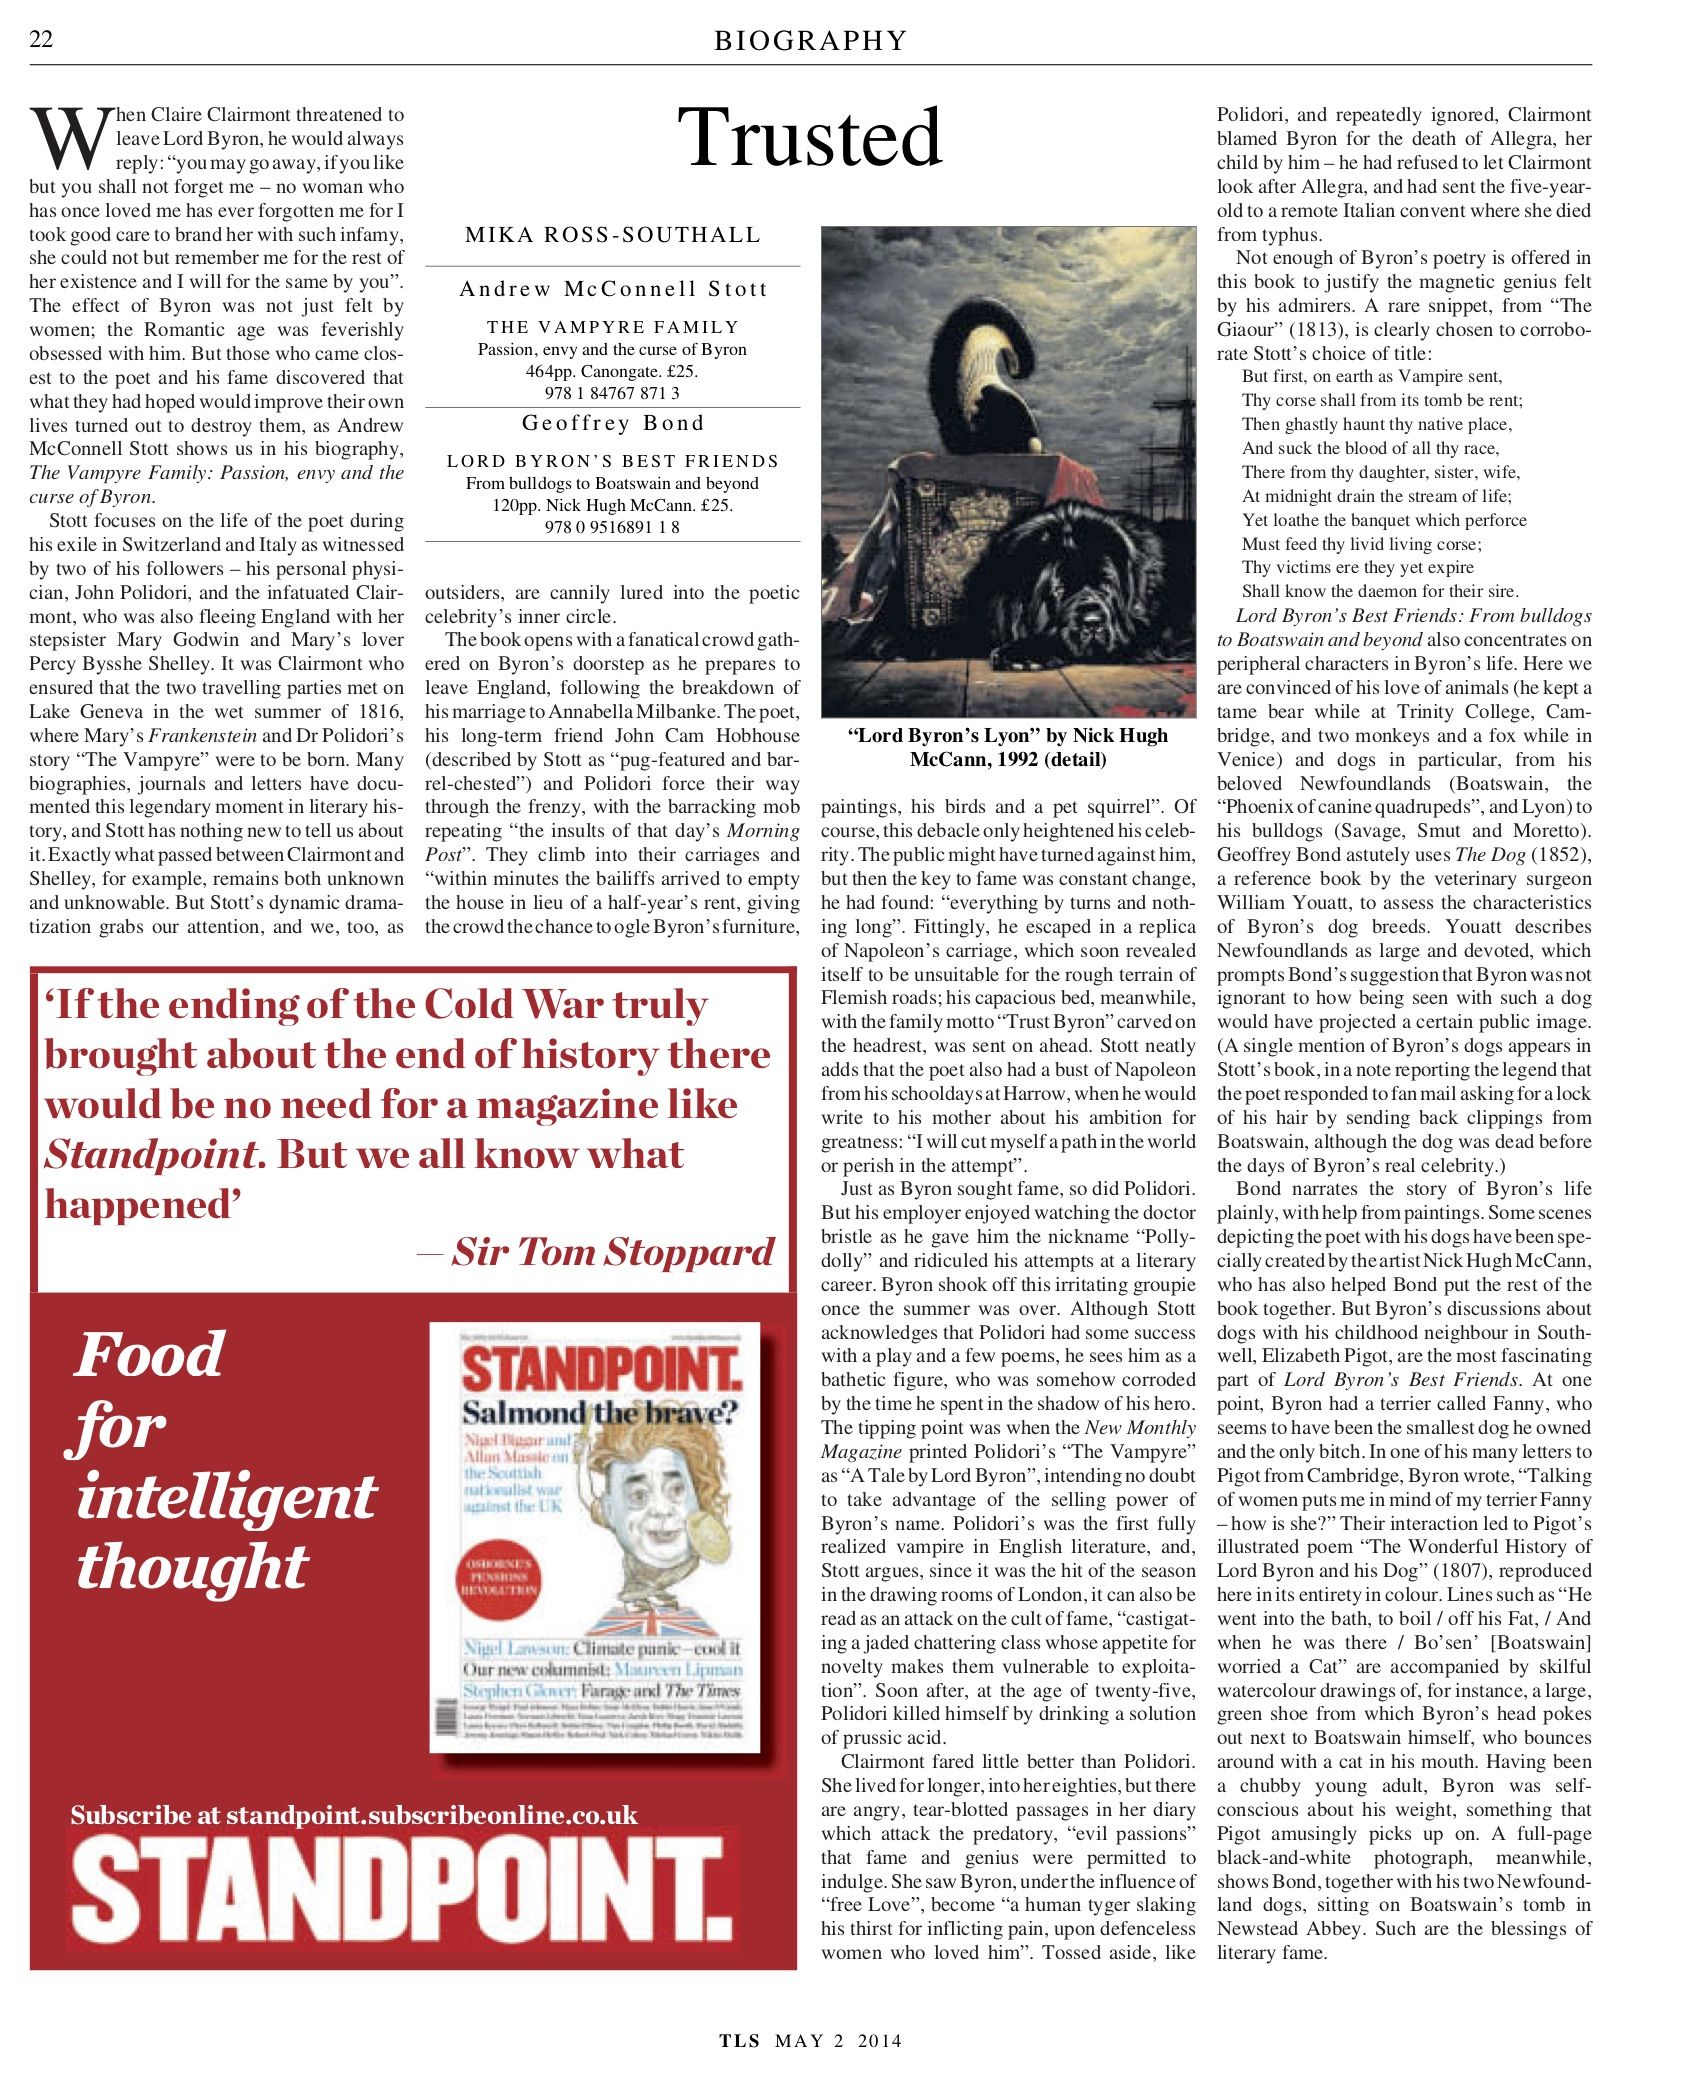 Trusted, Andrew McConnell Stott, Published in The Times Literary Supplement, May 2, 2014